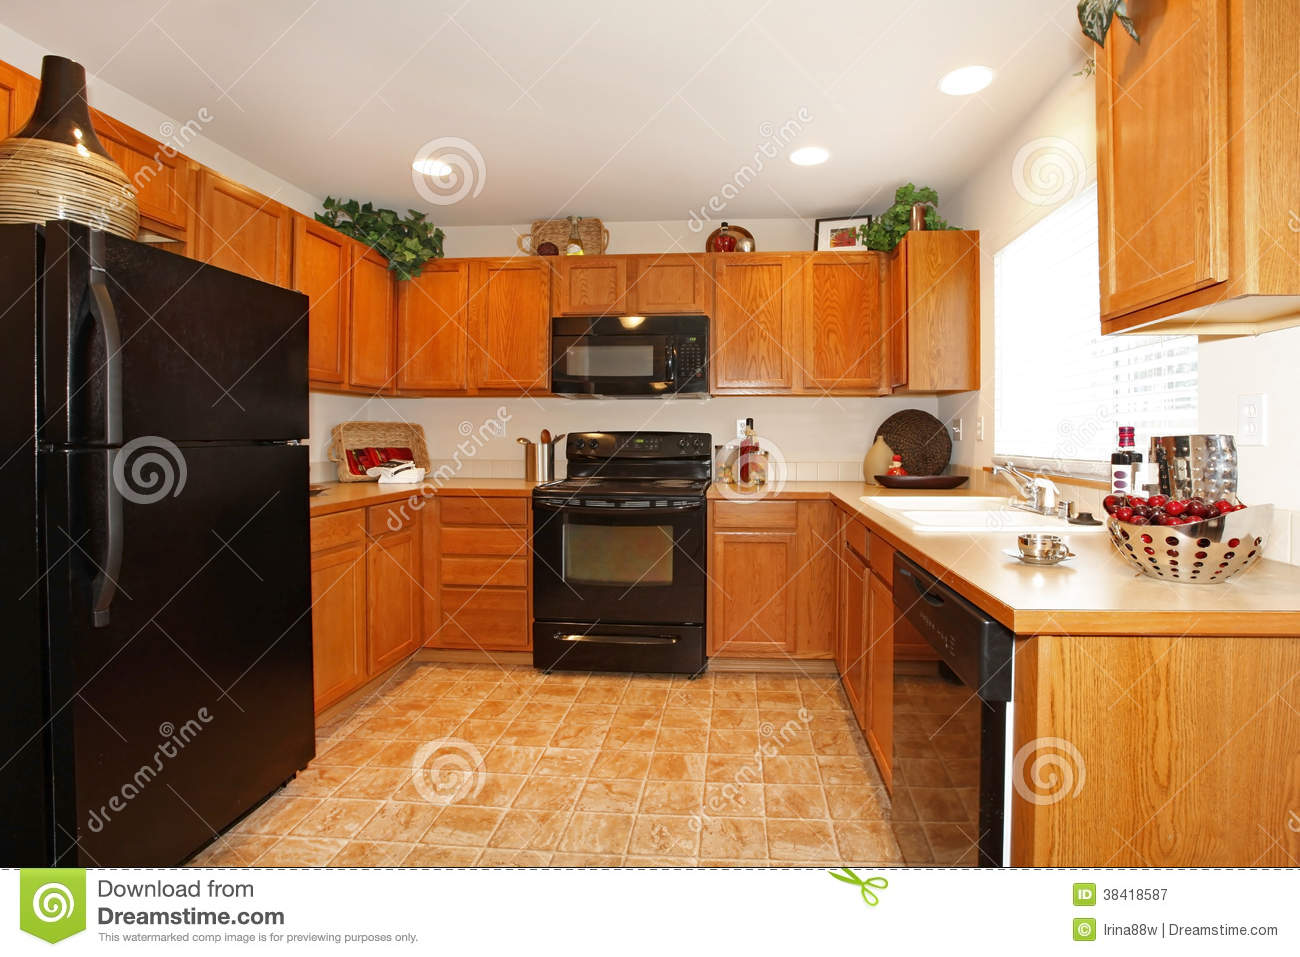 Brown kitchen cabinets with black appliances royalty free for Brown kitchen cabinets with black appliances